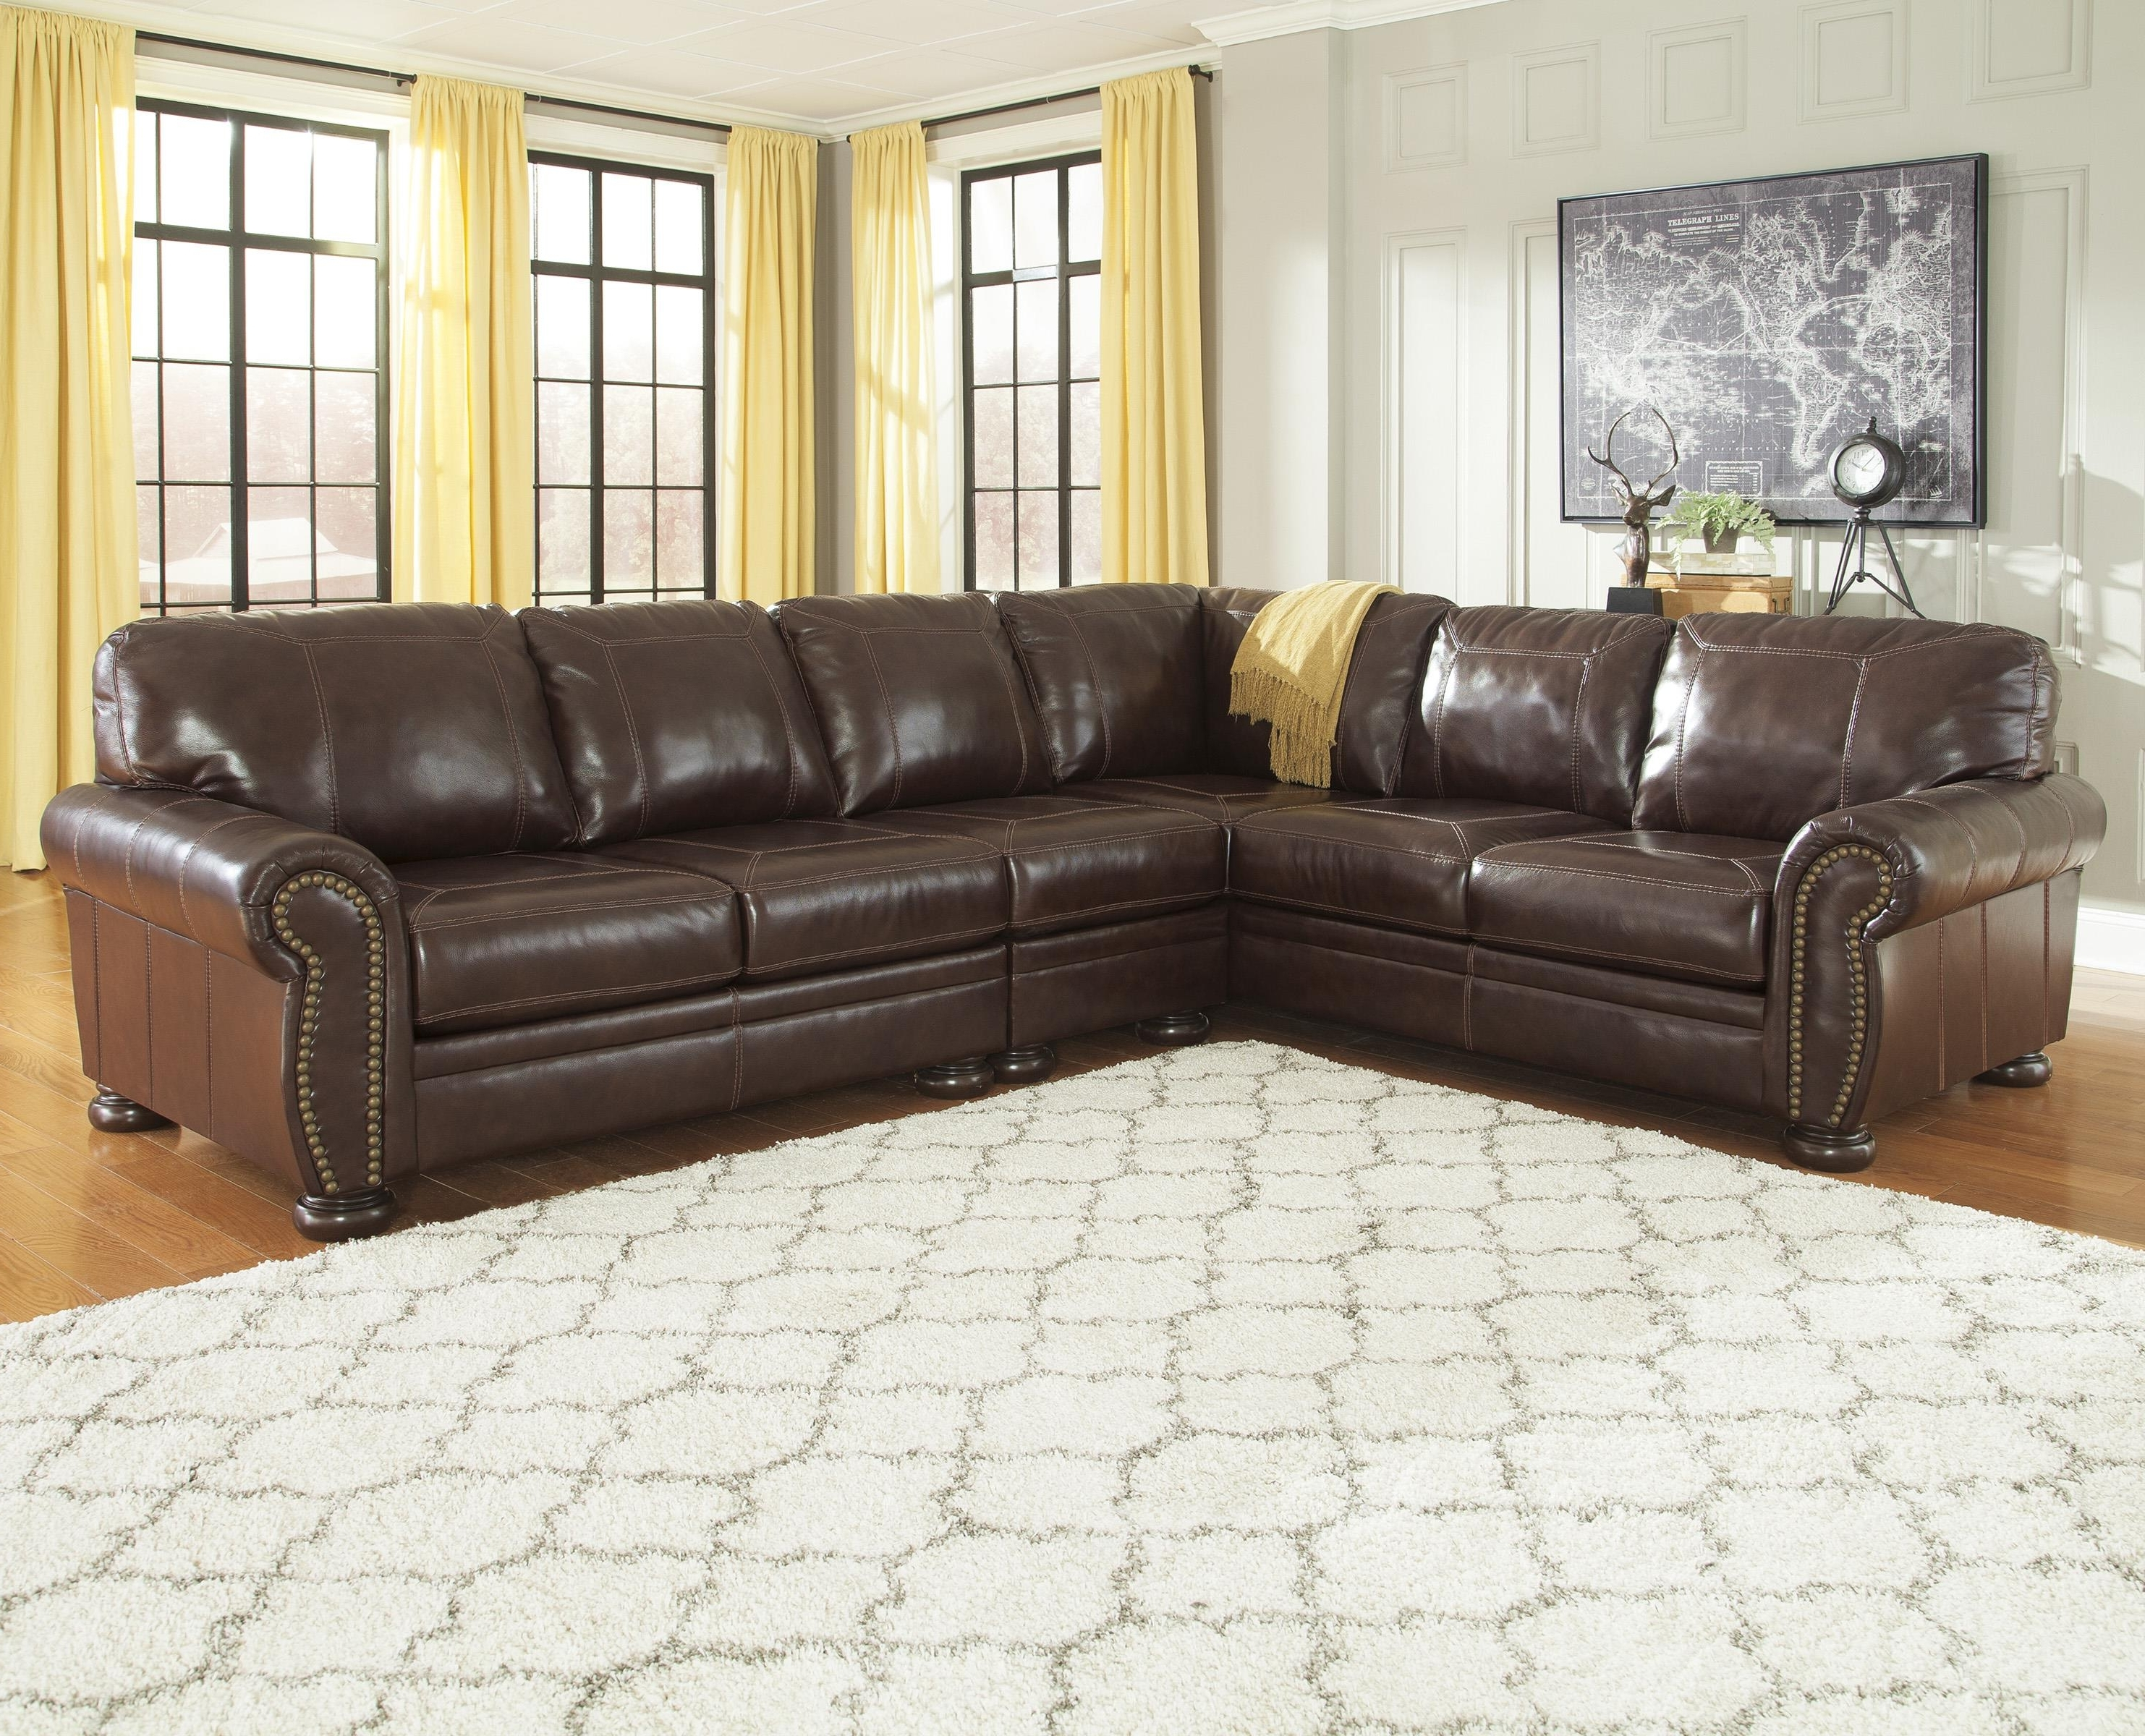 Sectional Sofas With Nailheads Regarding Fashionable 3 Piece Leather Match Sectional With Rolled Arms, Nailhead Trim (View 14 of 20)